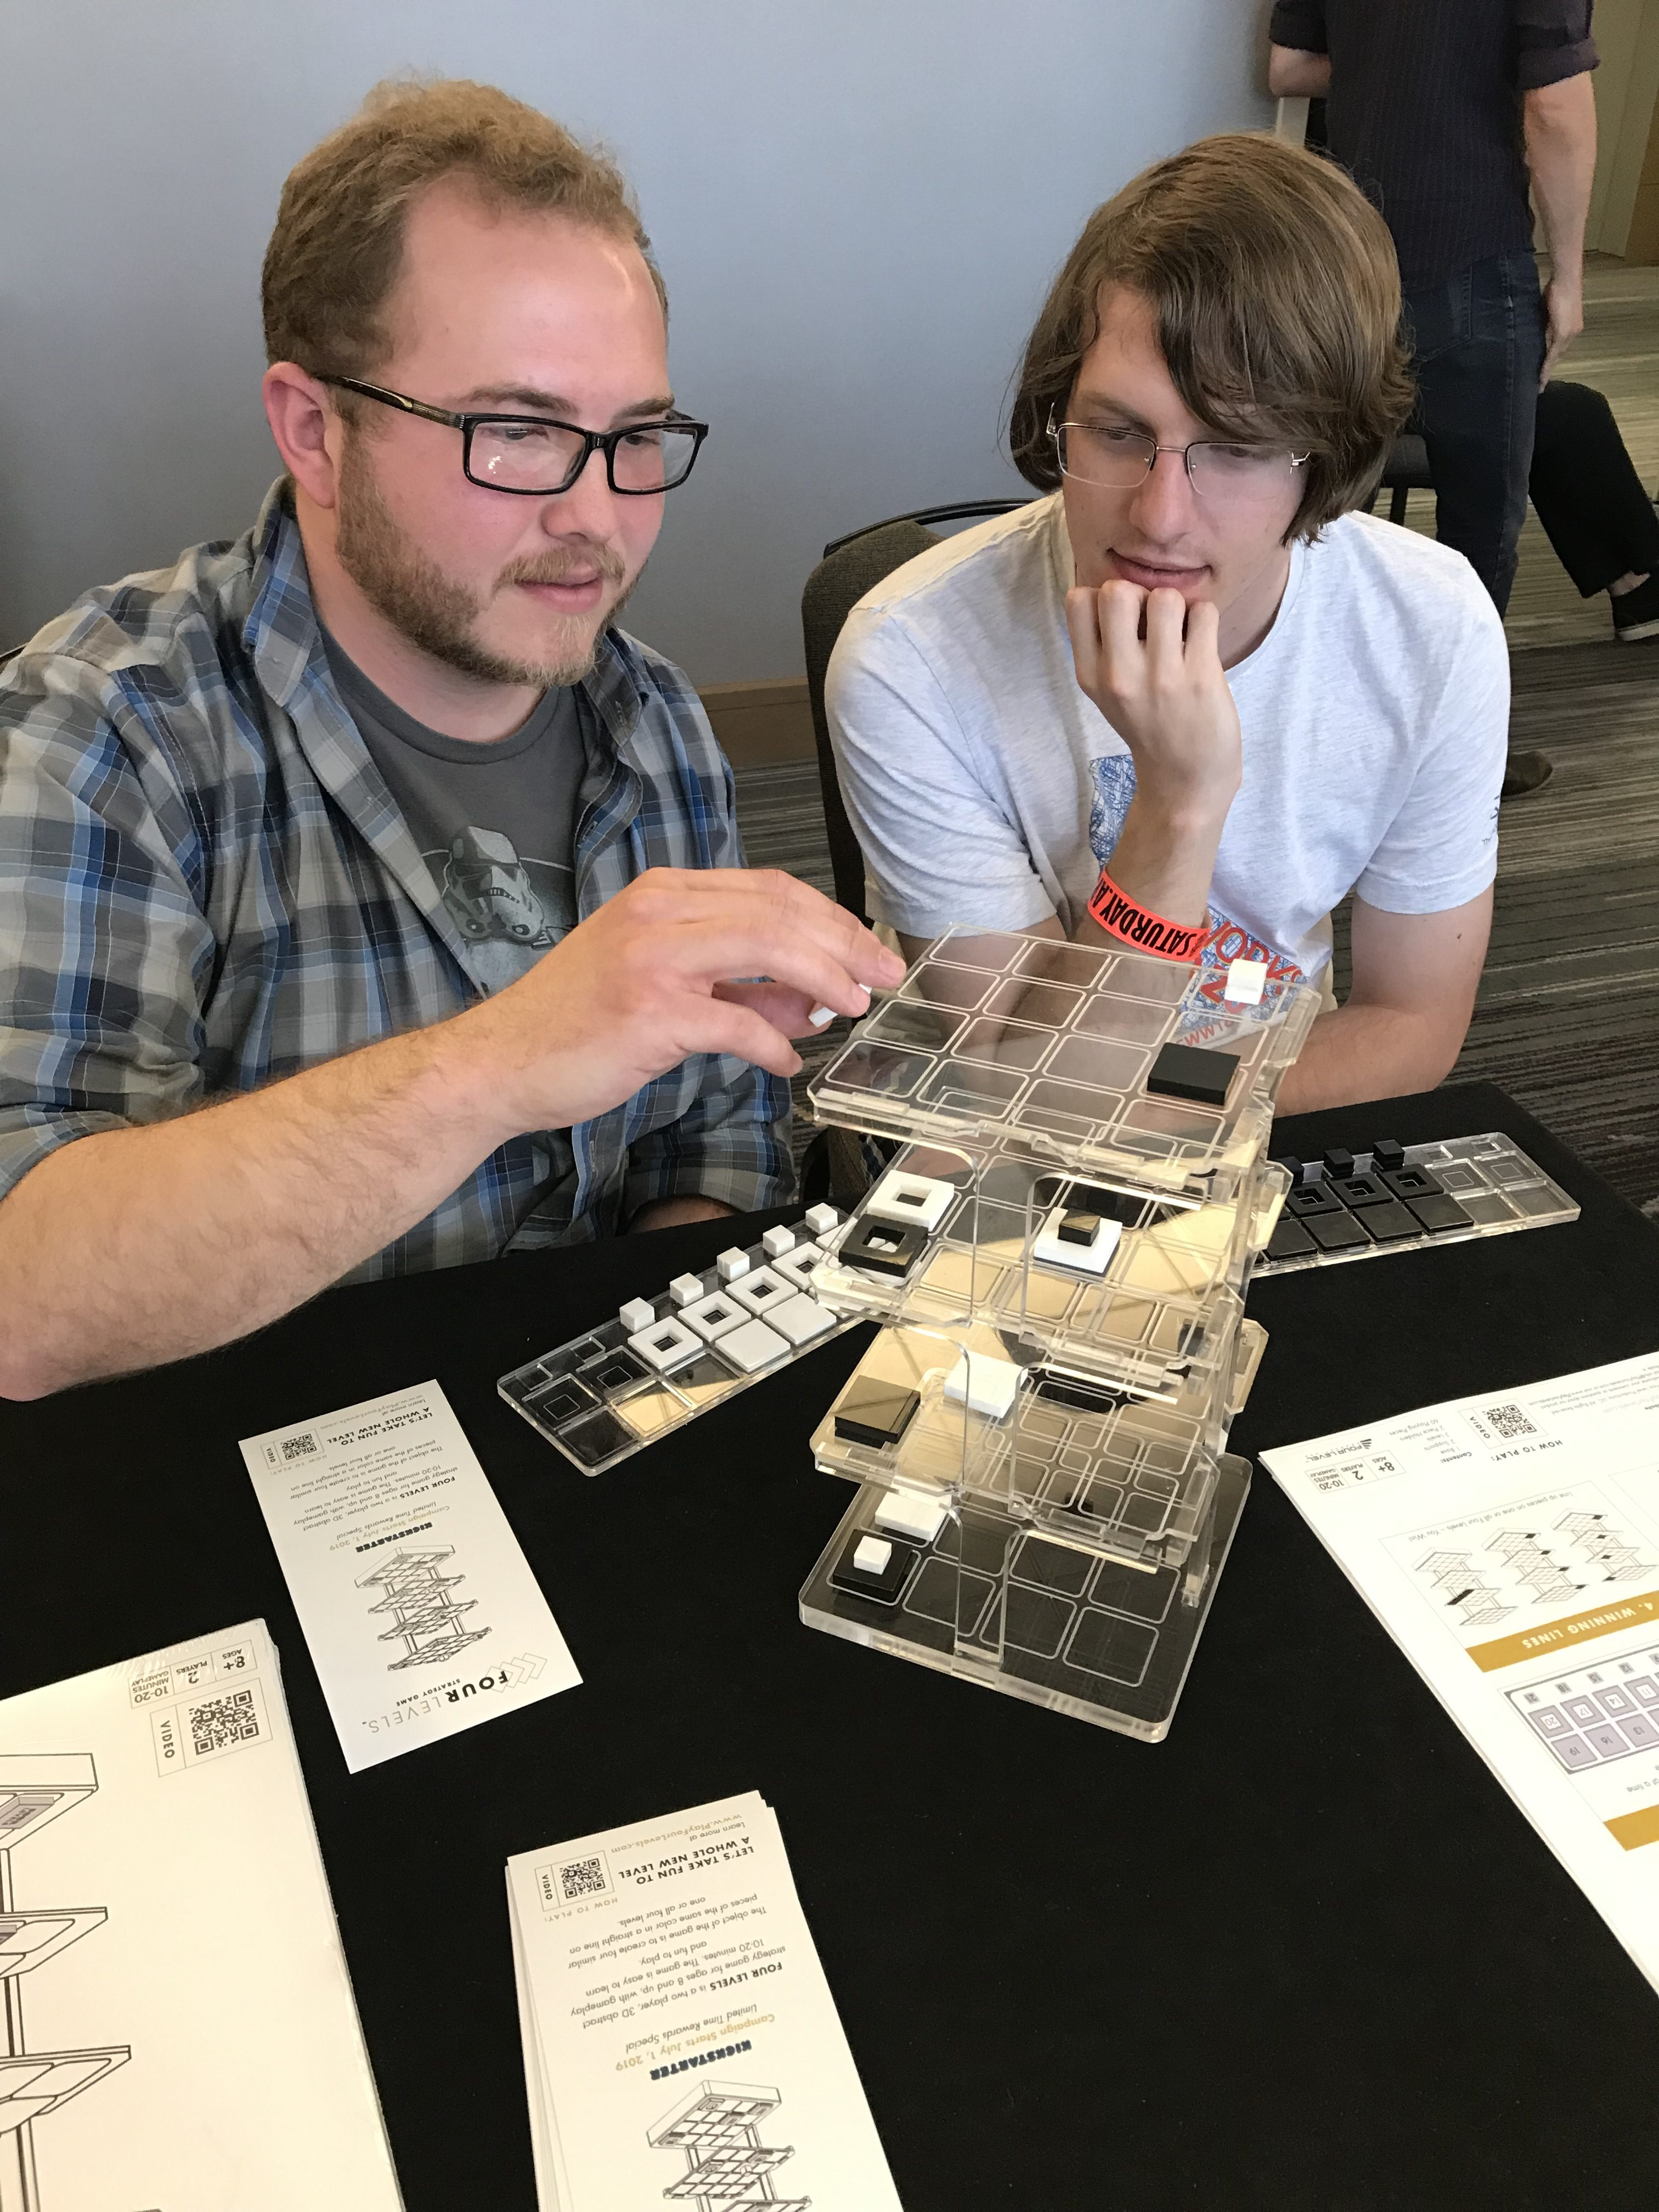 Playtesting Four Levels